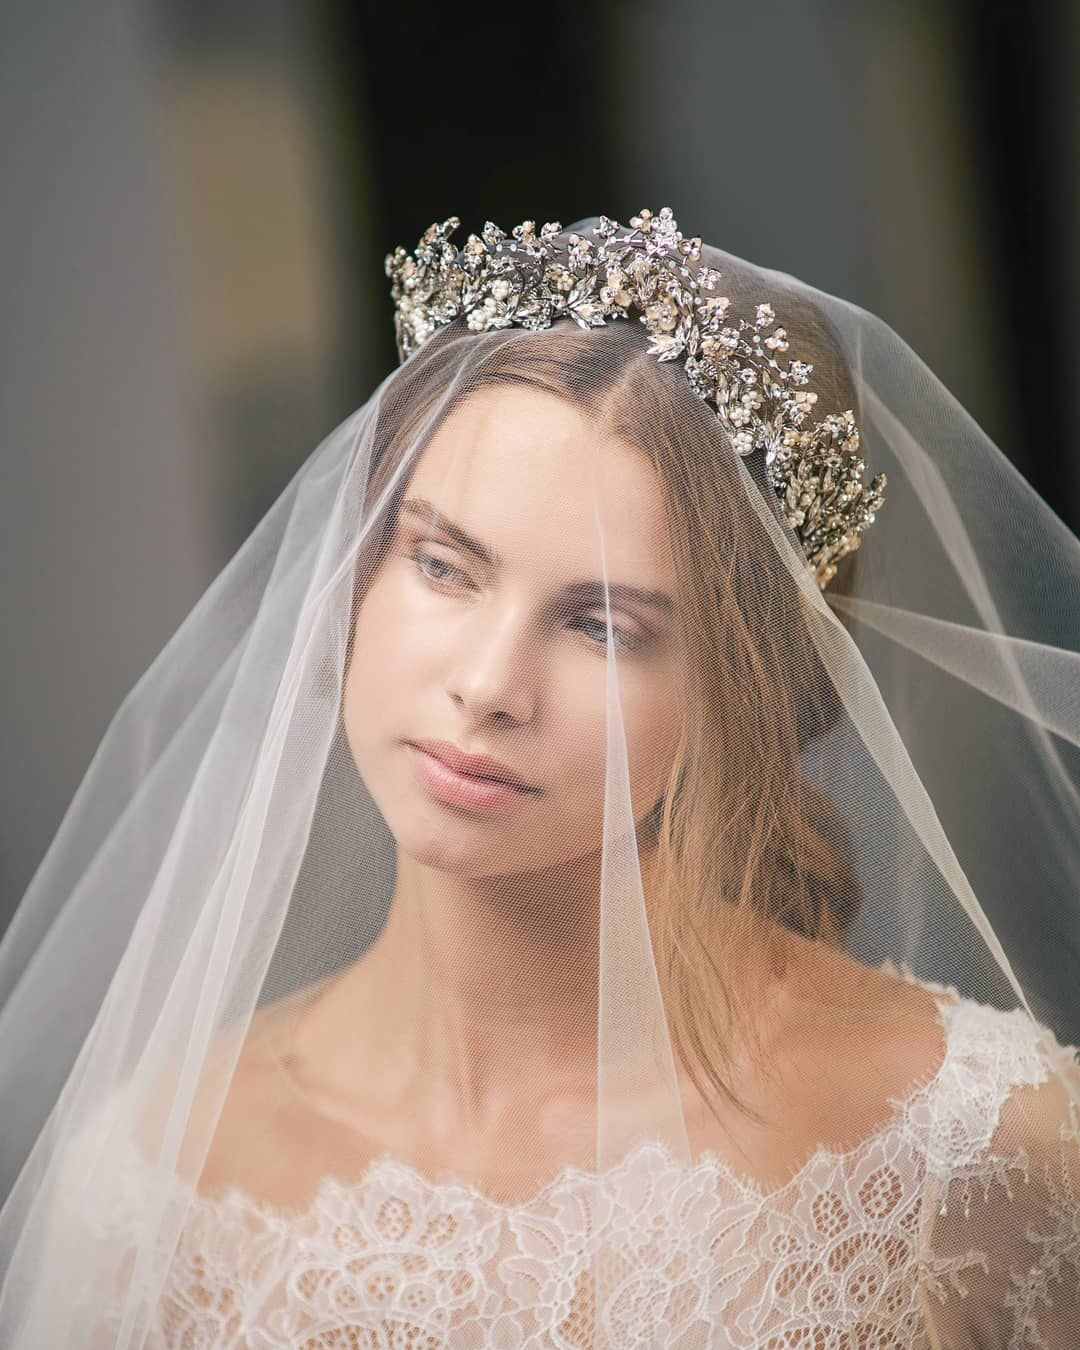 A bridal look styled with a beautiful veil and